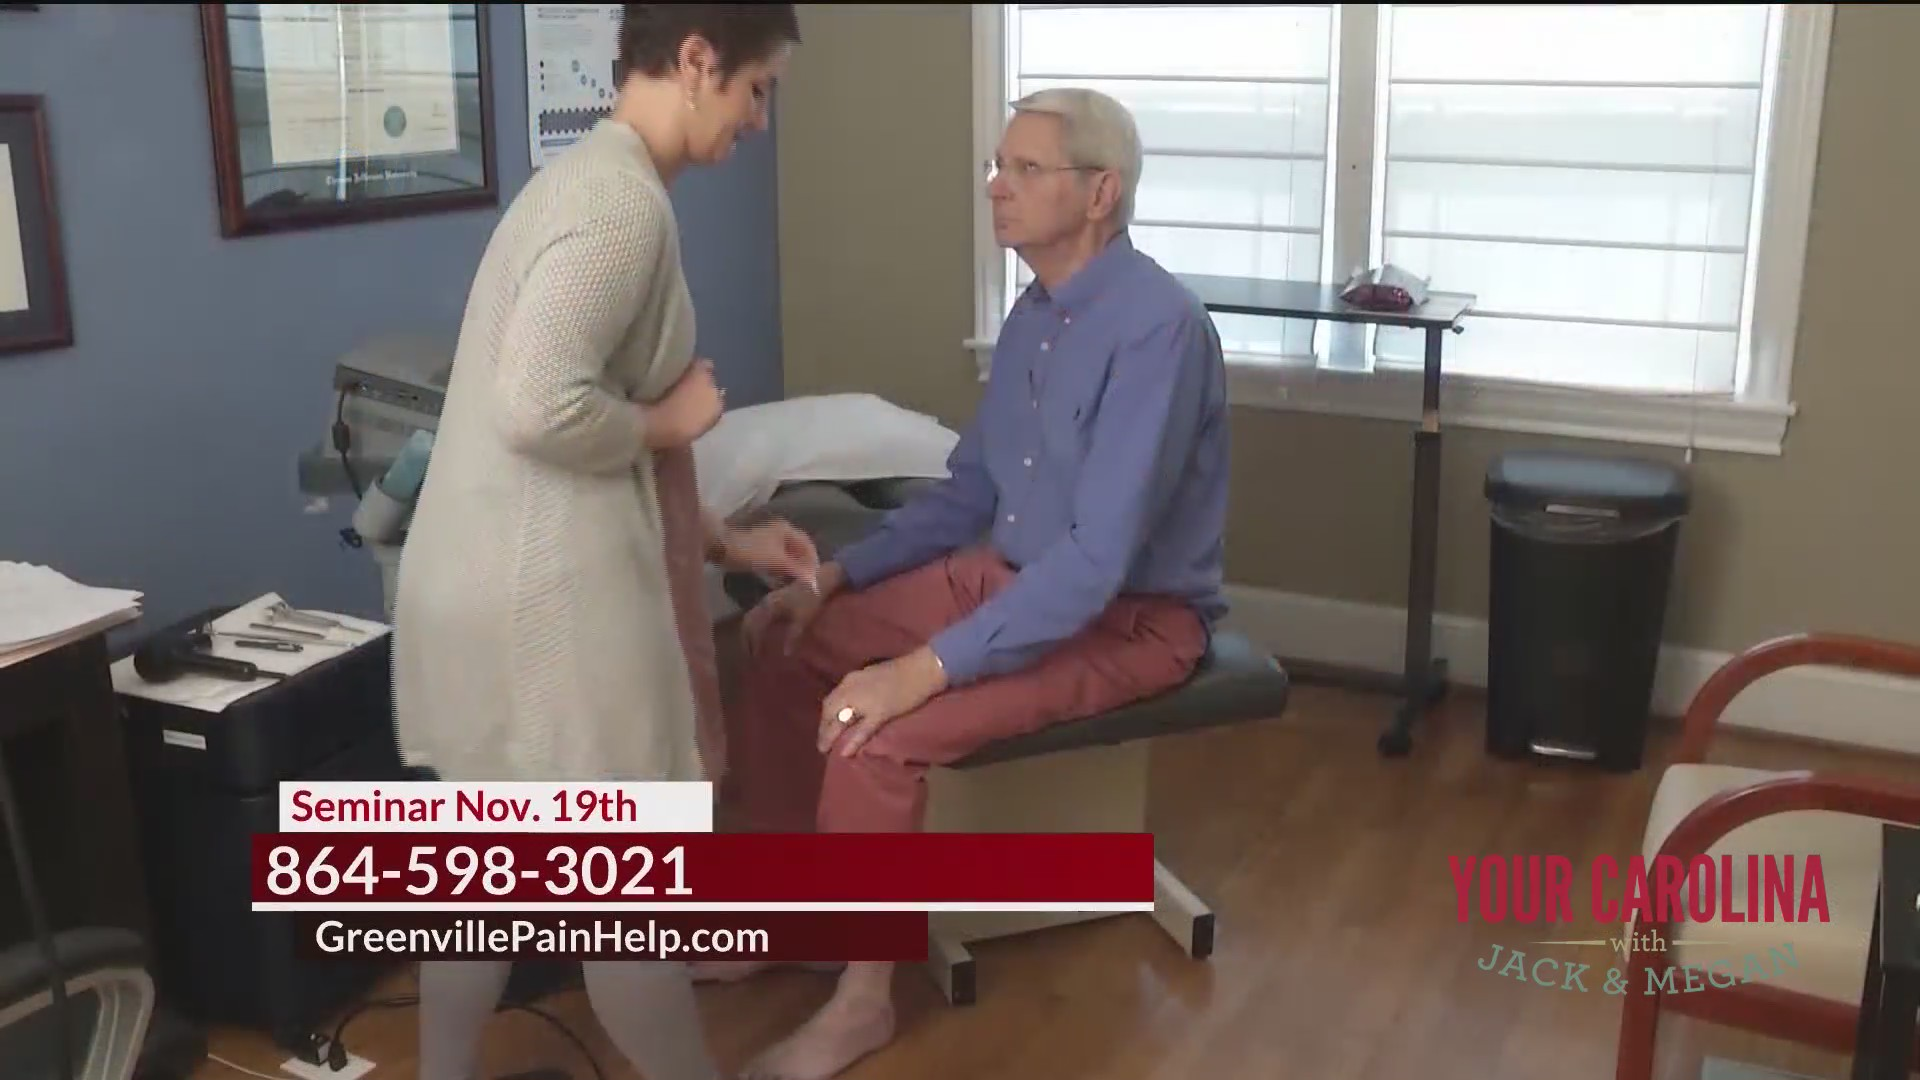 New Life Medical Centers - Revolutionary Treatment For Neuropathy Symptoms